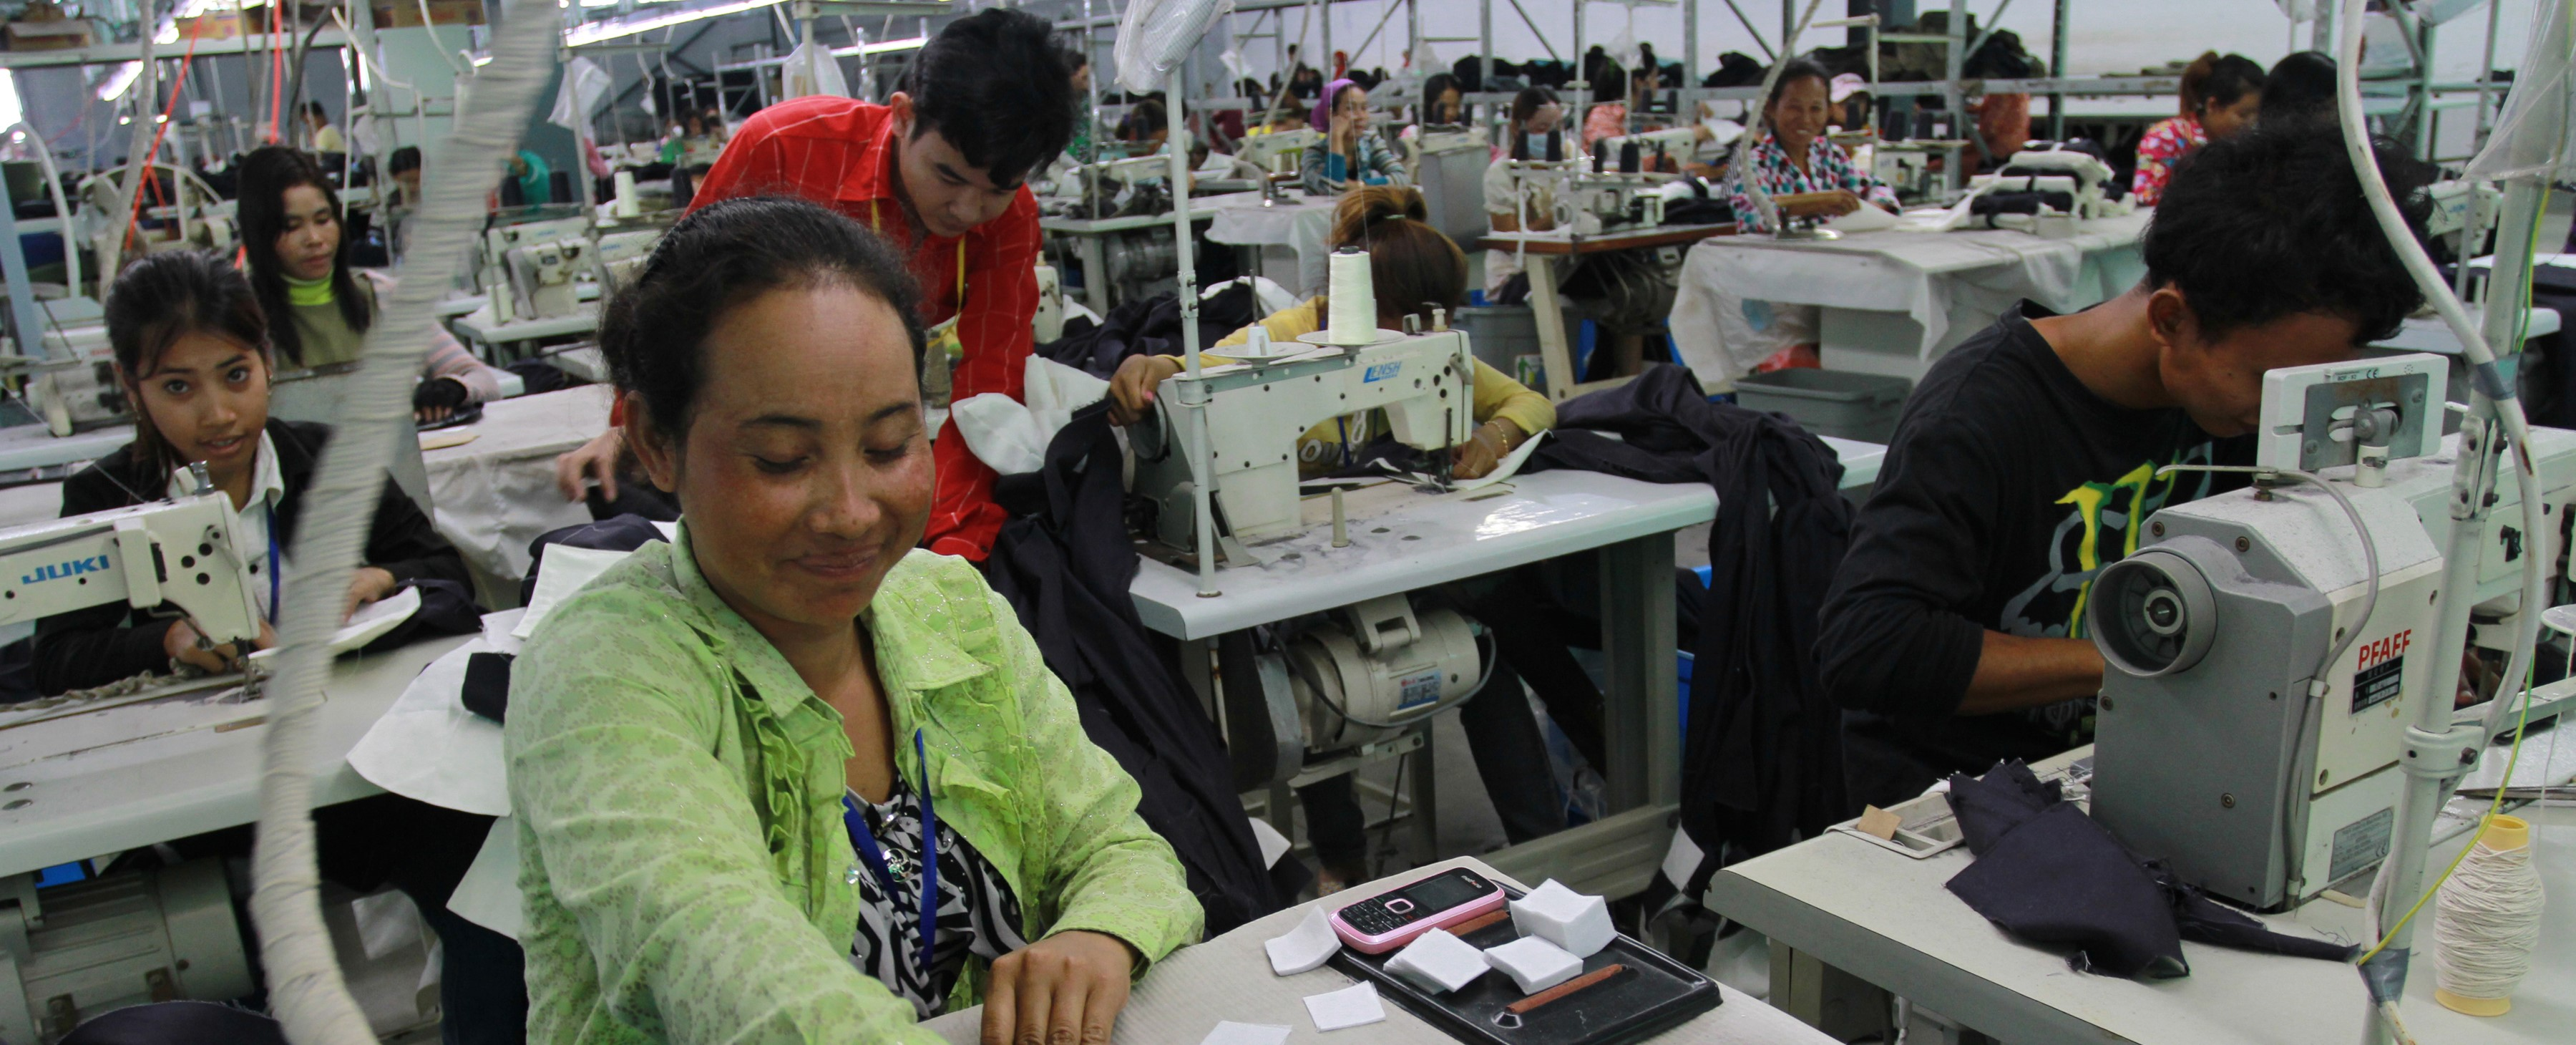 Garment industry workers in Cambodia (Photo: Flickr/World Bank)